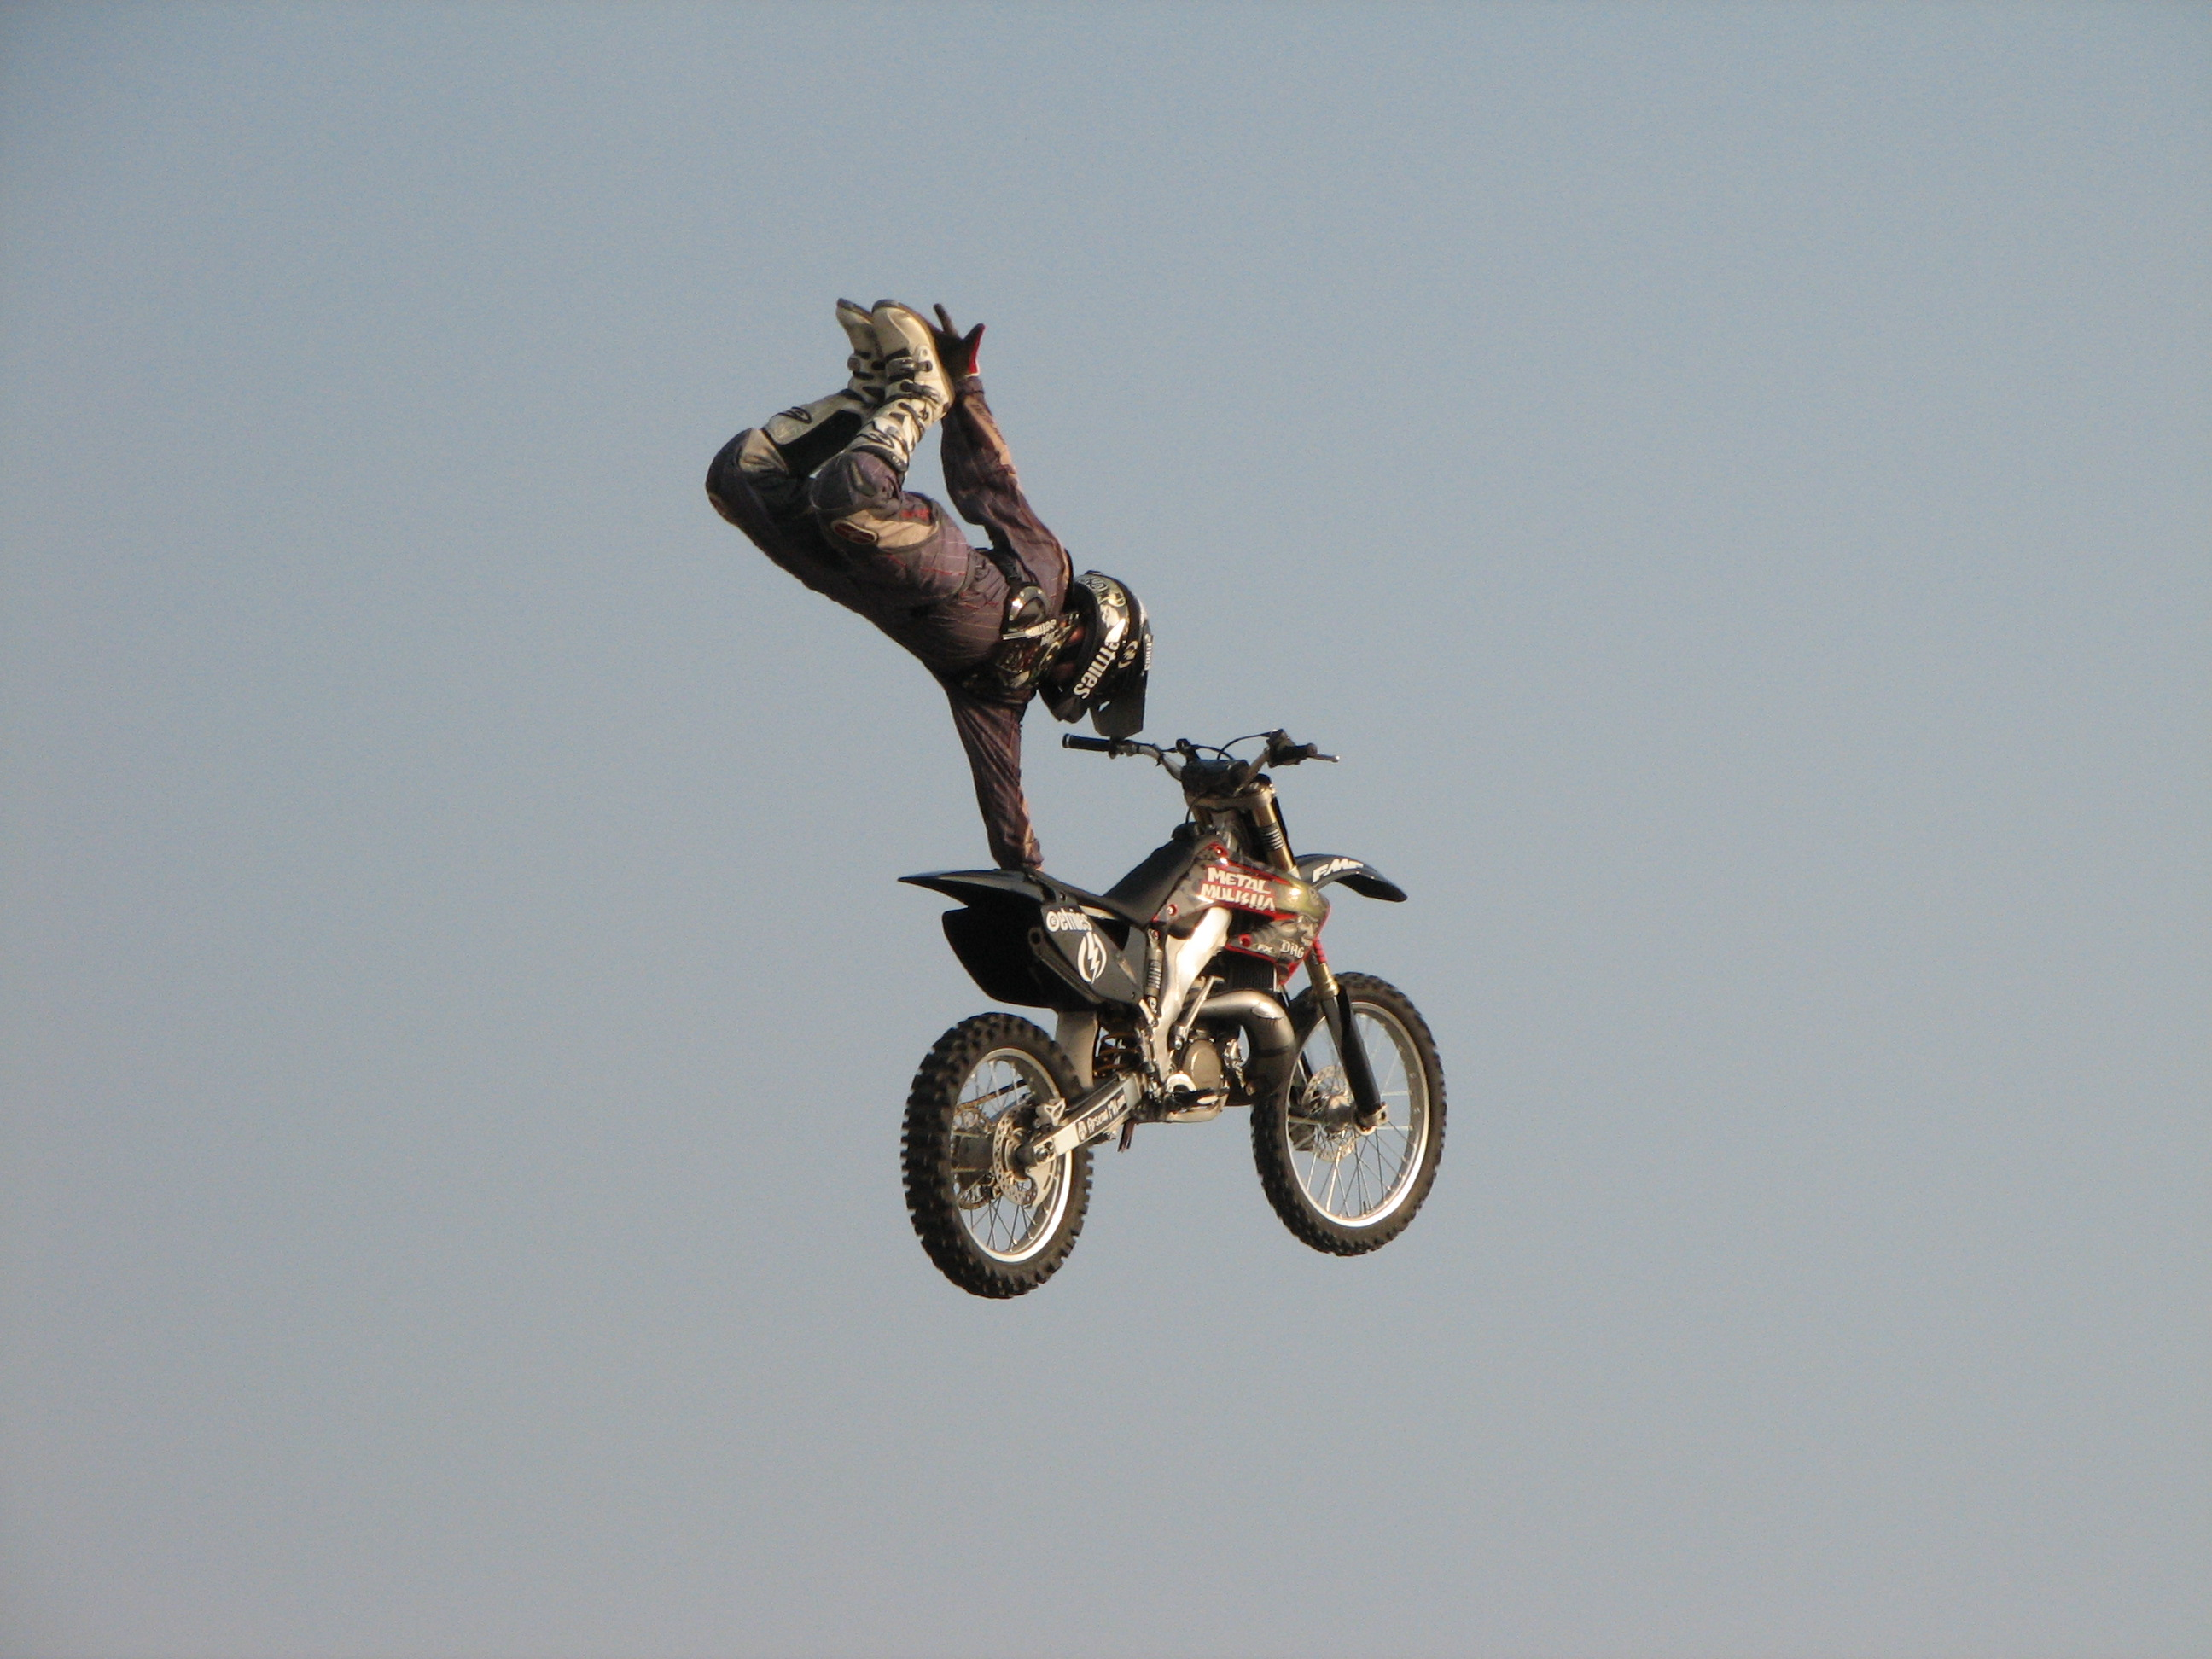 Dirt Bike X Games Freestyle Freestyle motorcross in Taiwan